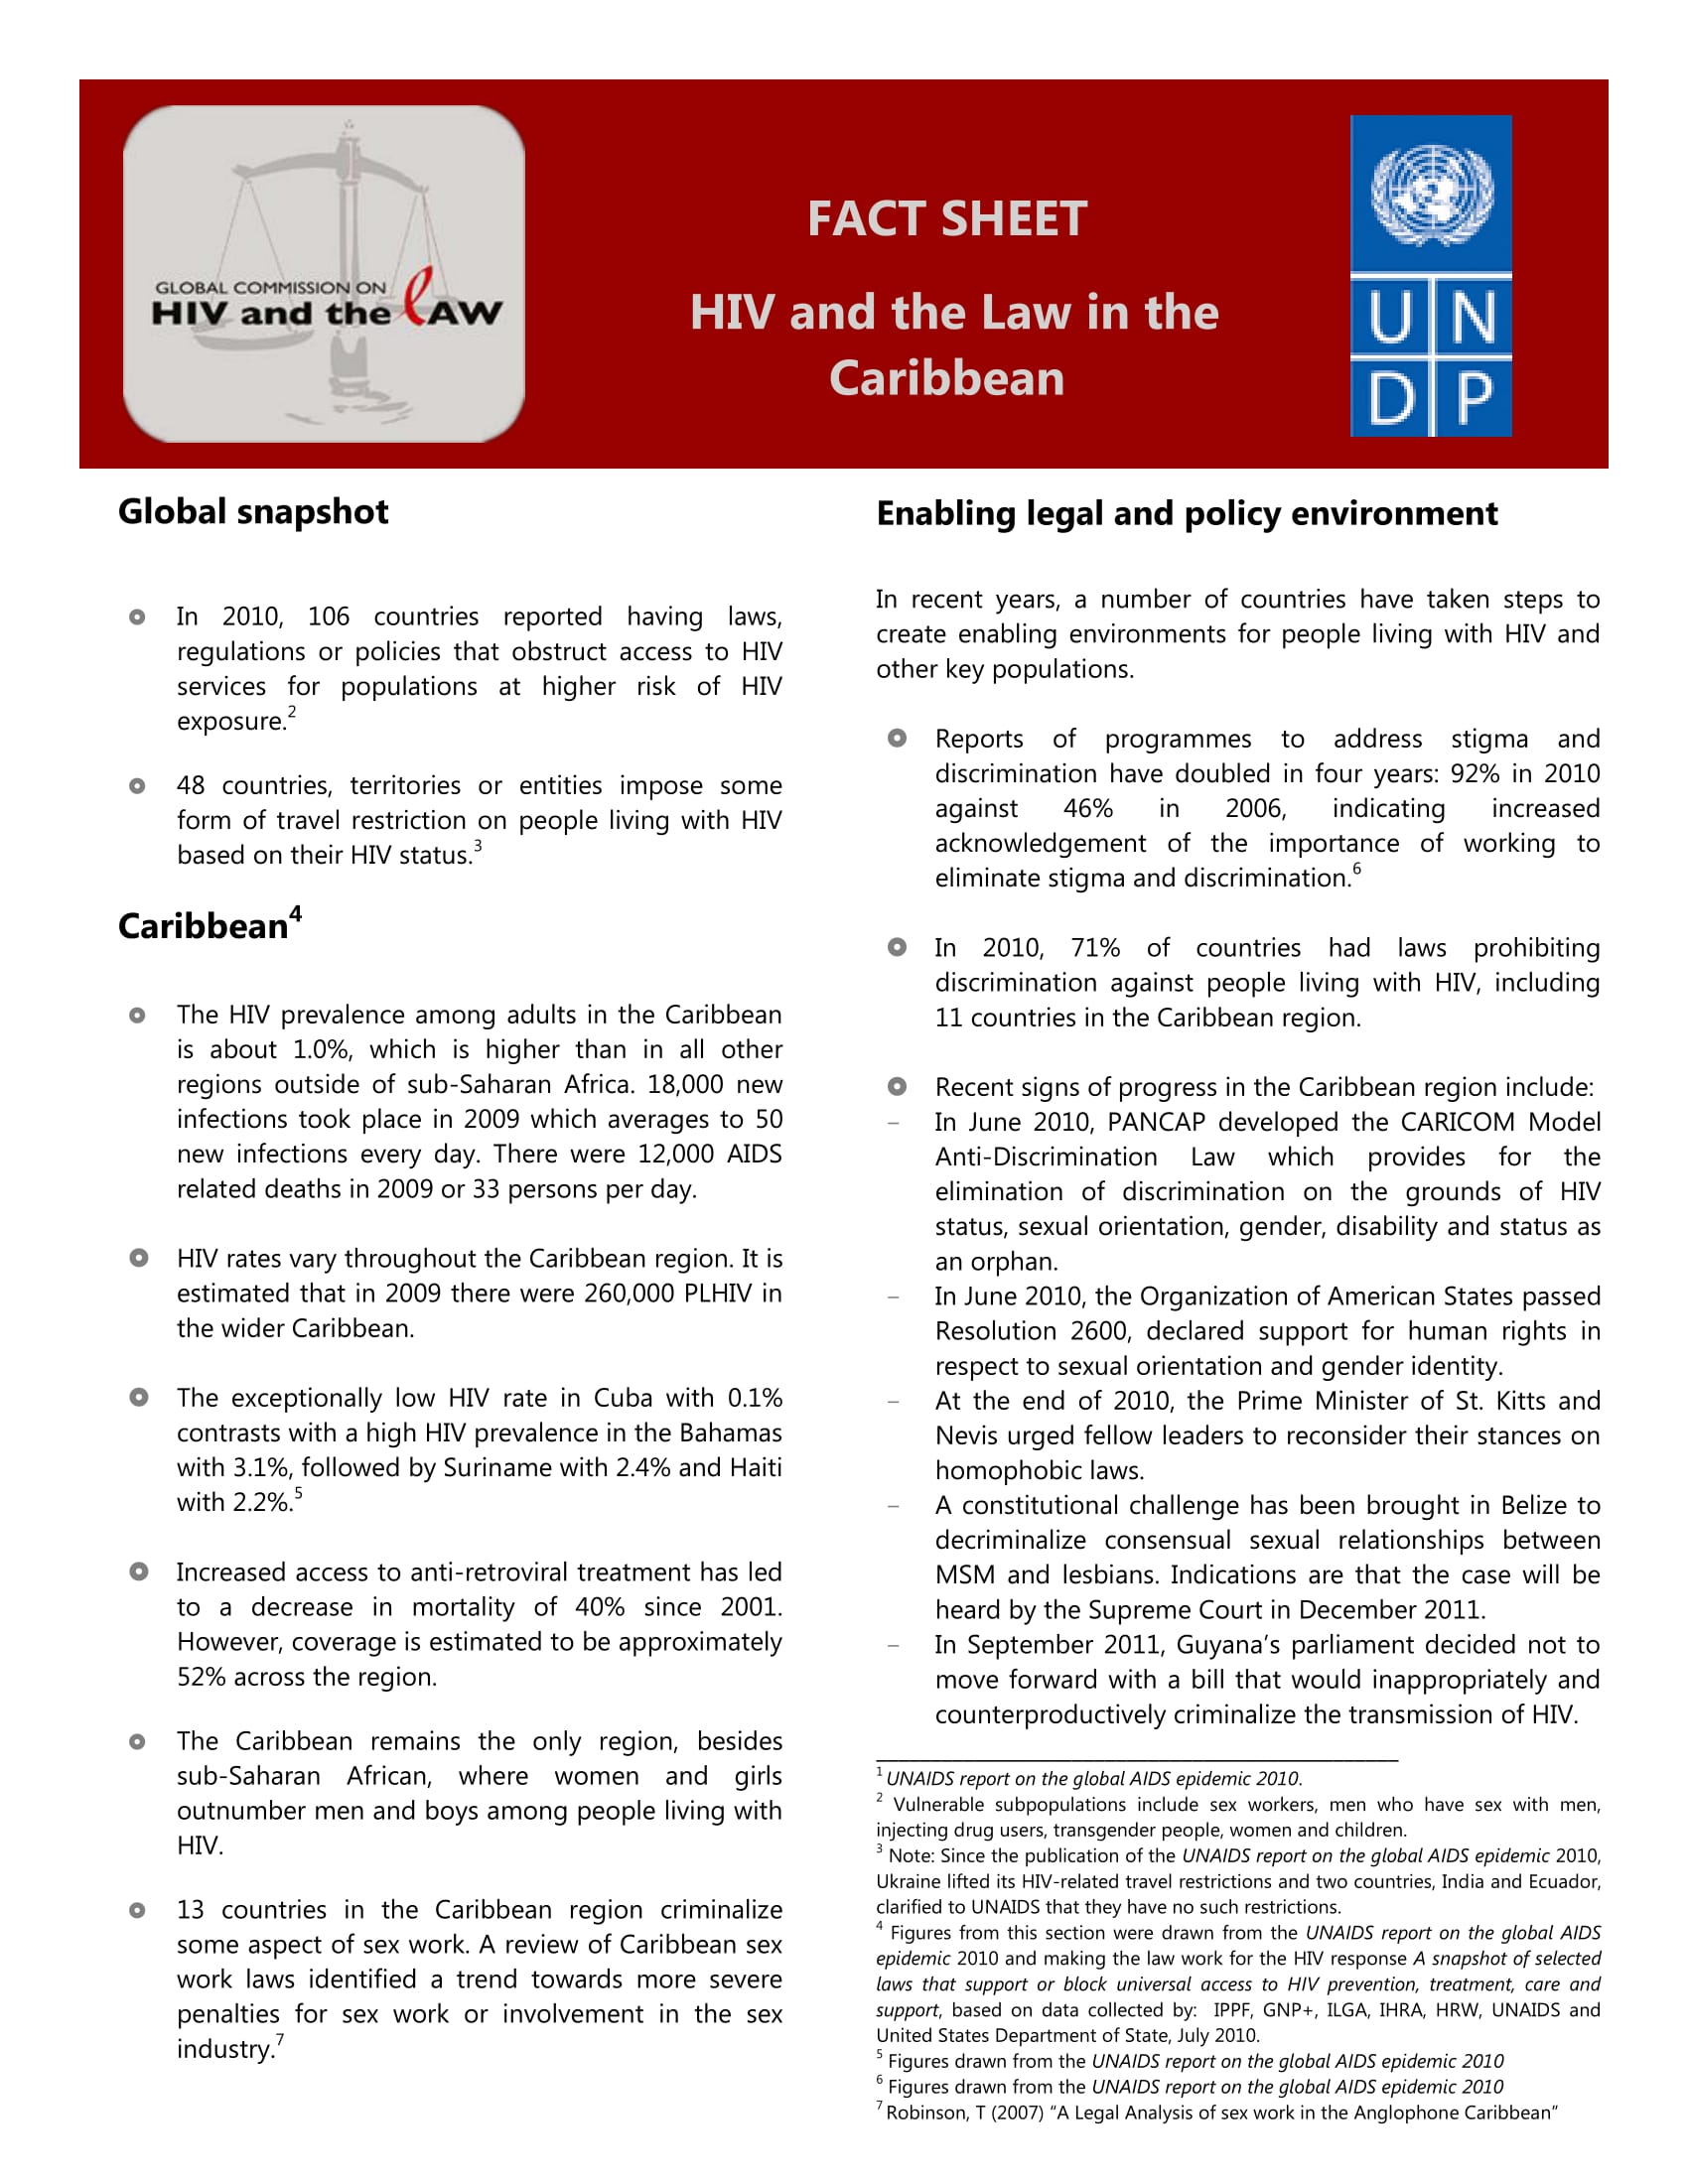 HIV and the Law in the Caribbean: Fact Sheet